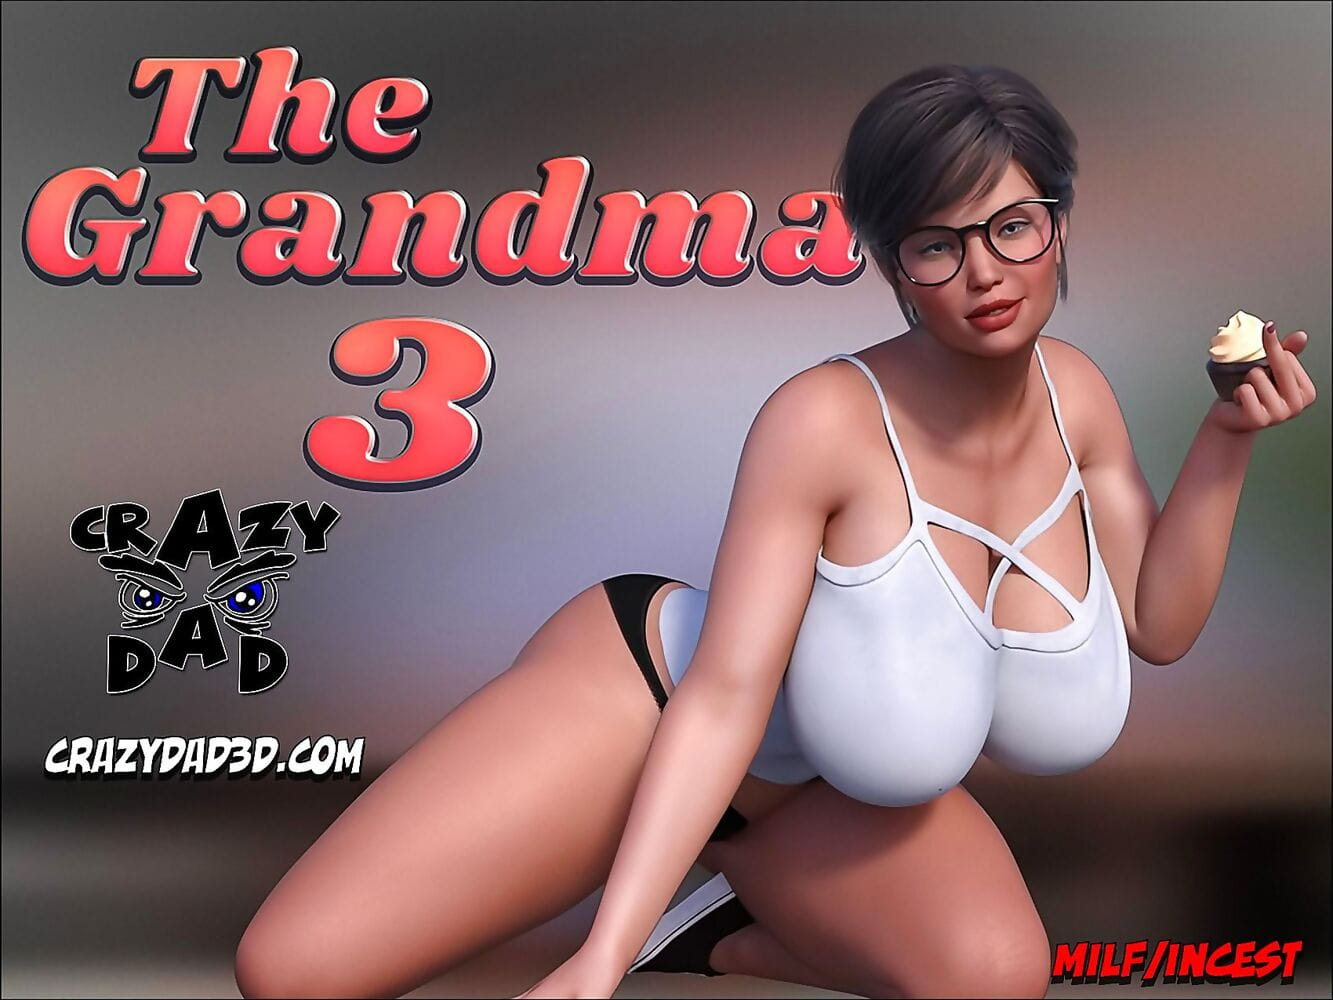 CrazyDad- The Grandma 3